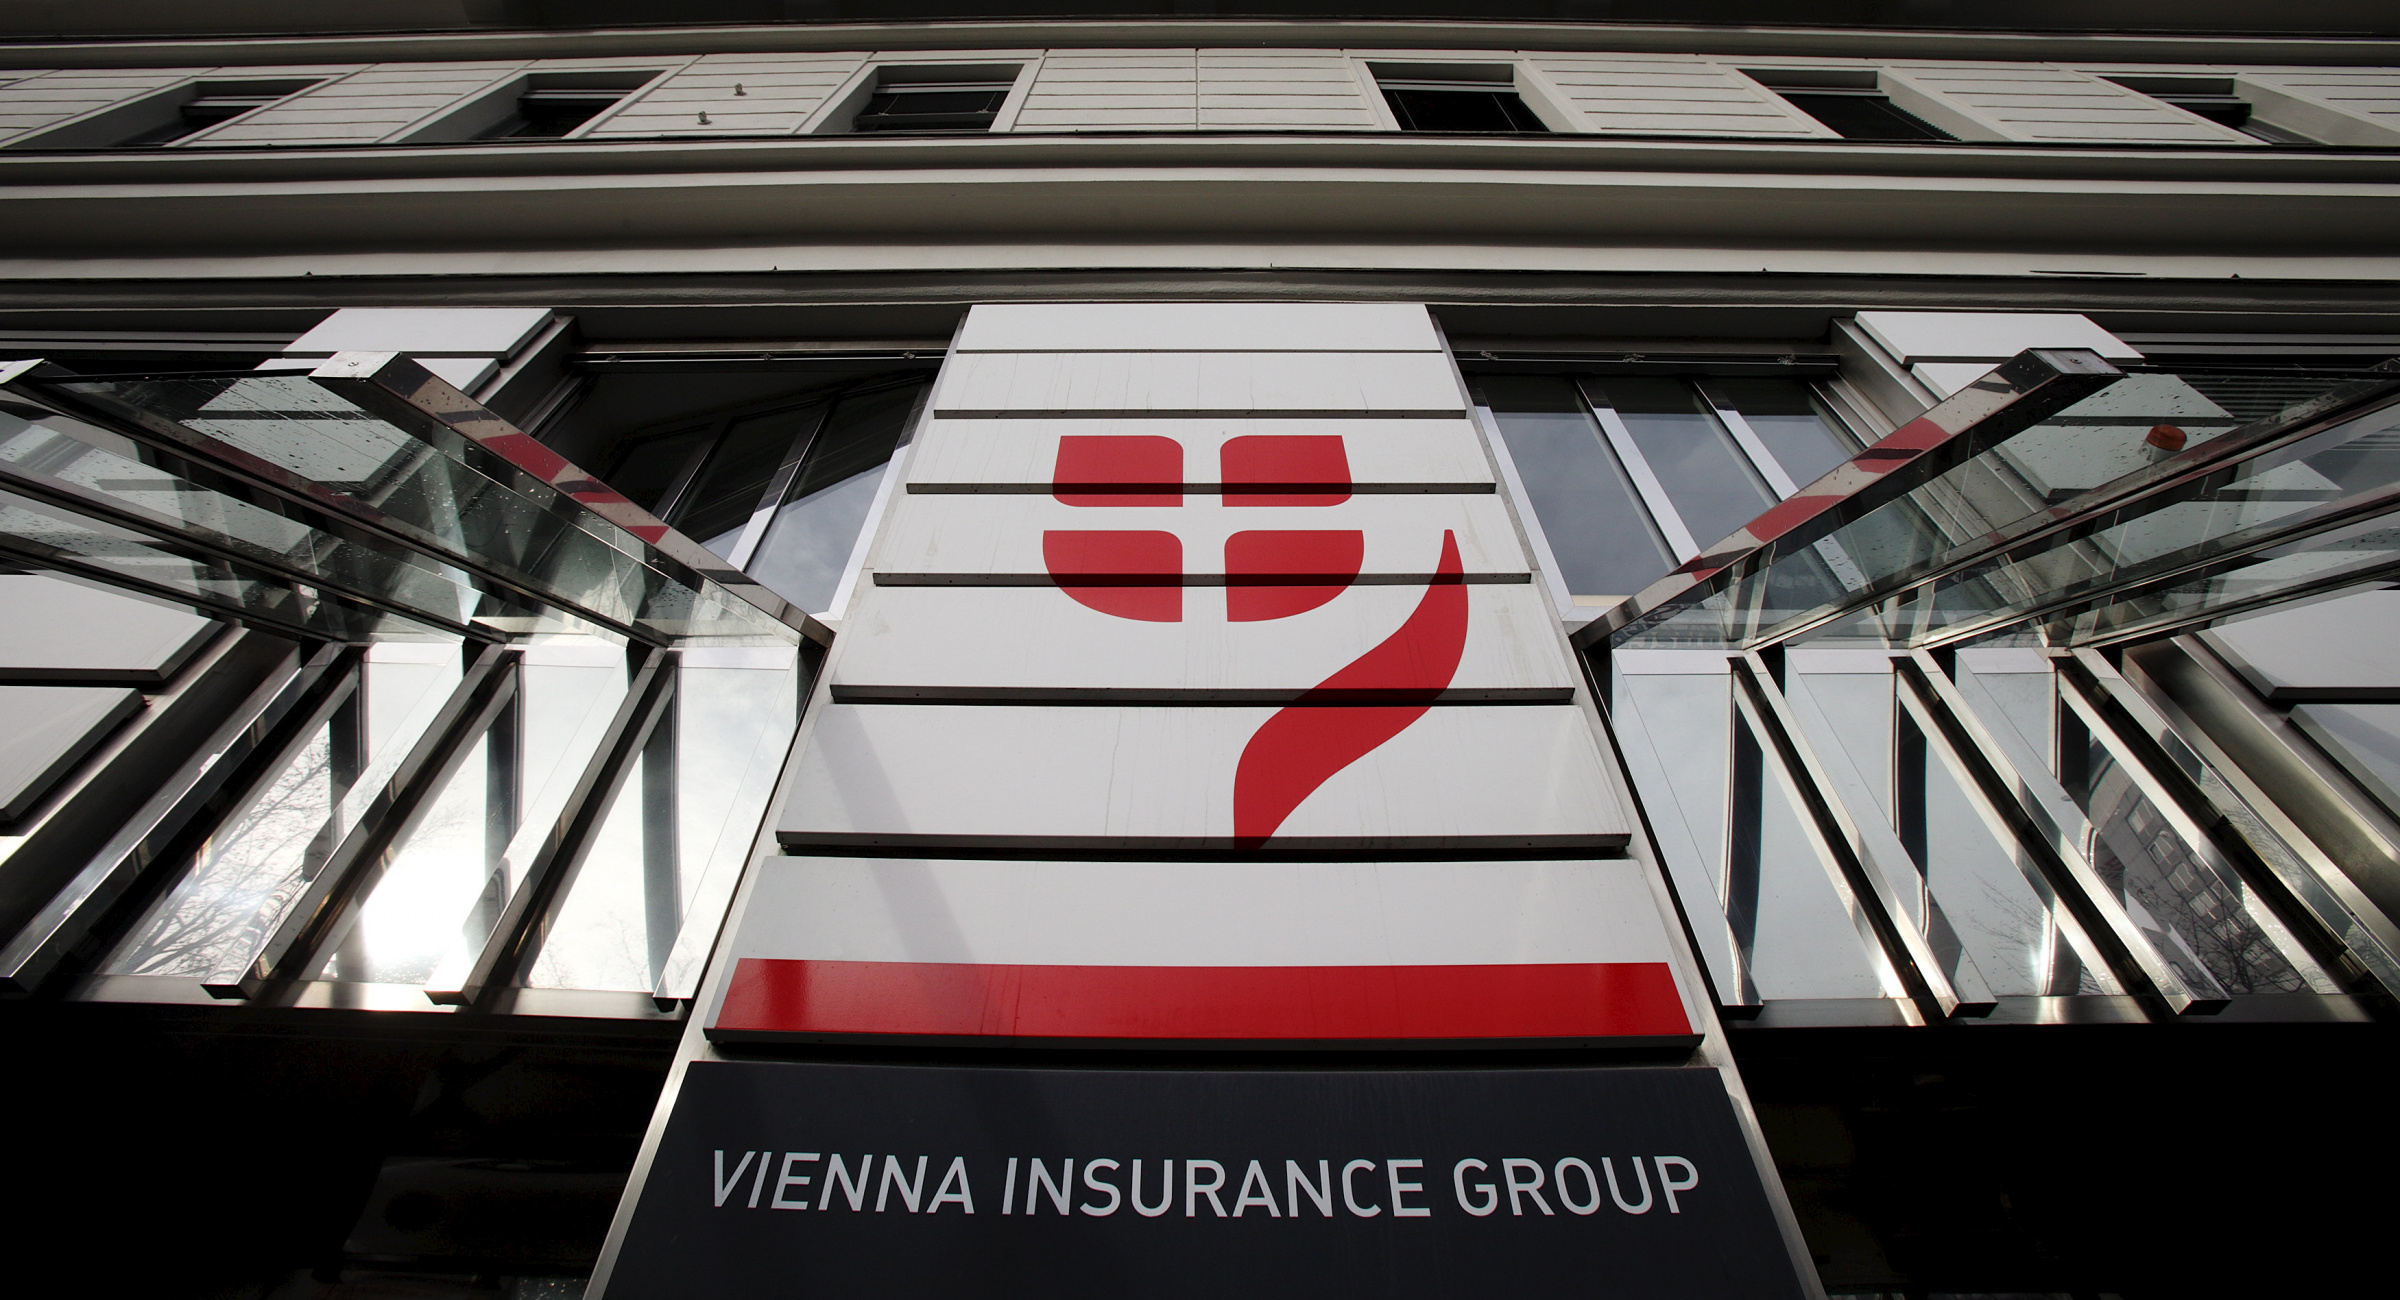 Vienna Insurance Group logo. Foto: REUTERS/Heinz-Peter Bader/Files